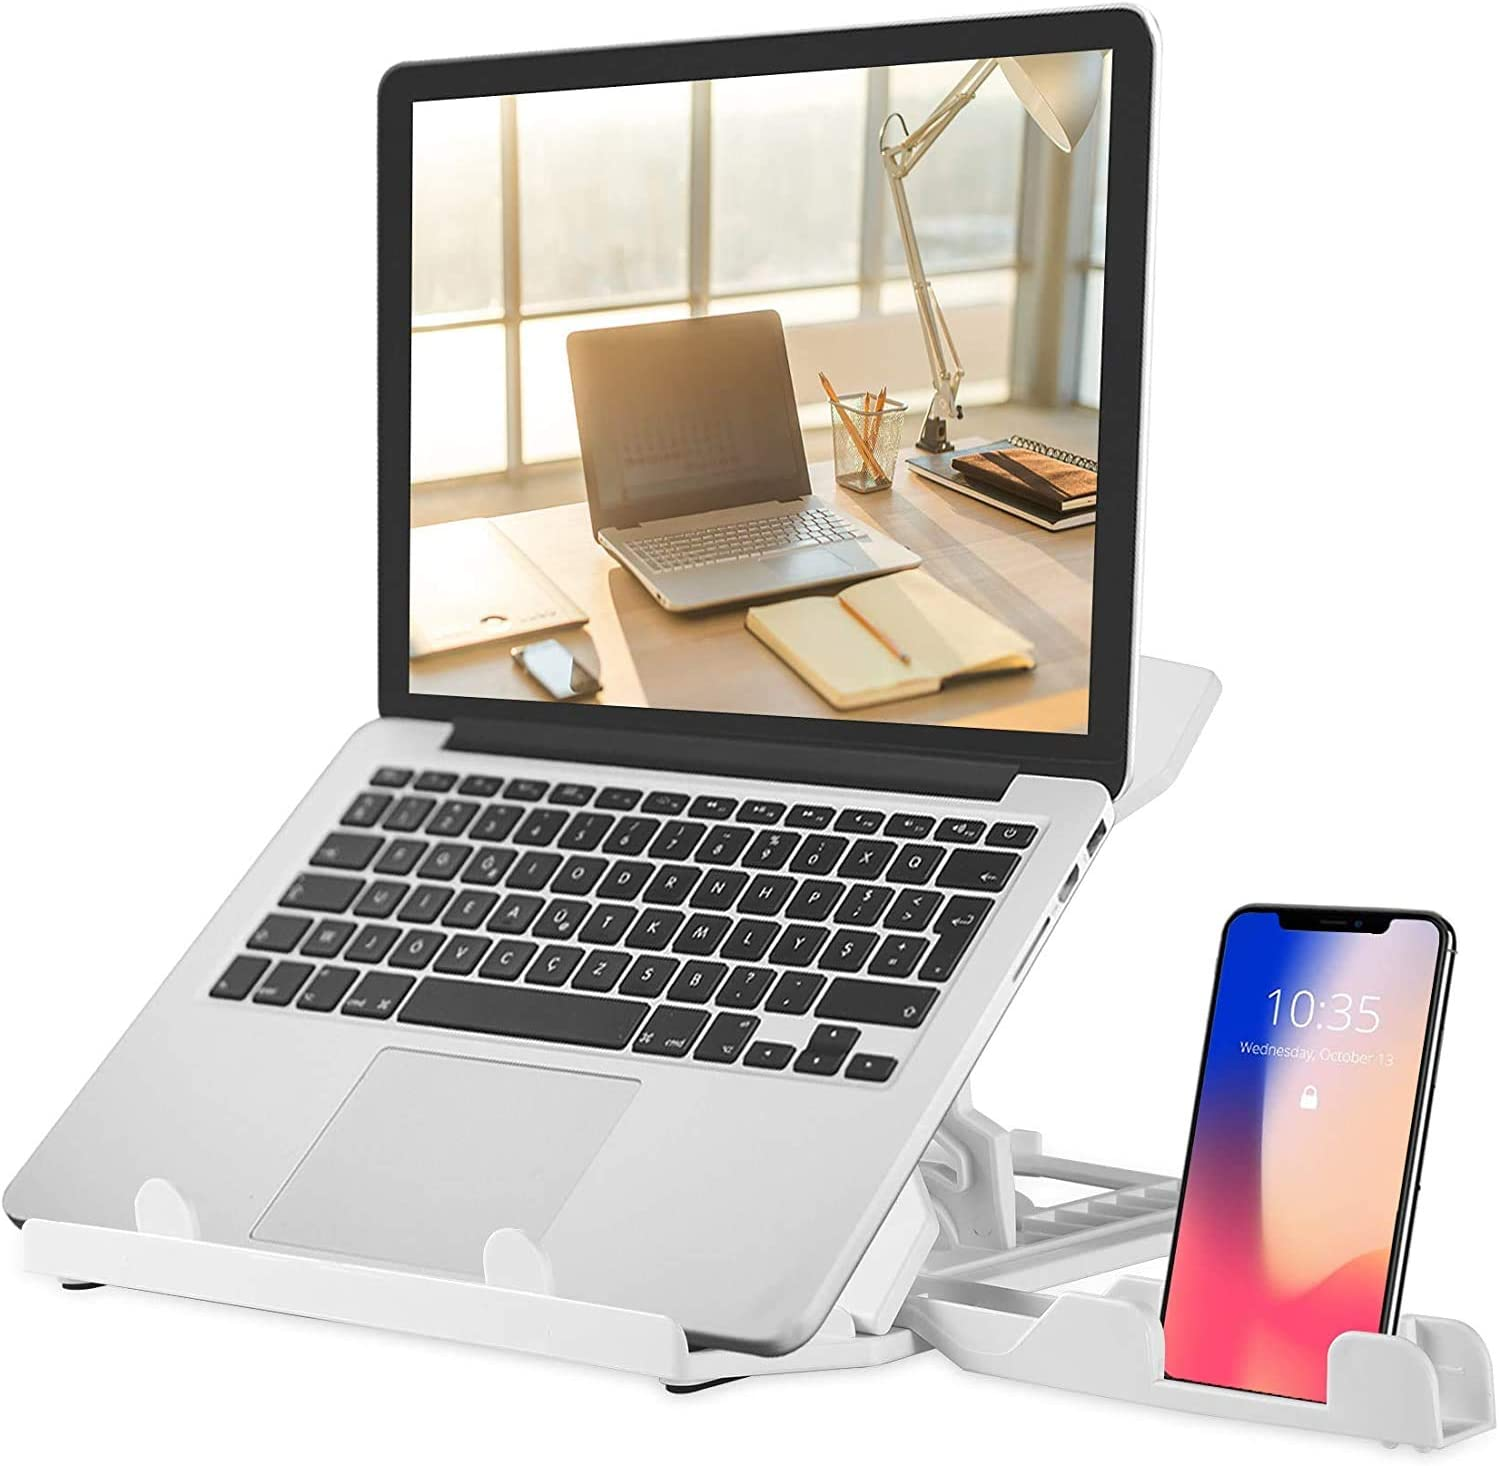 "Adjustable Laptop Stand, Laptop Computer Holder with Integrated Phone Holder, Multi-Angle and Height Foldable Laptop Mount with Portable Handle, Compatible for 9 to 15.6"" Laptops (White)"